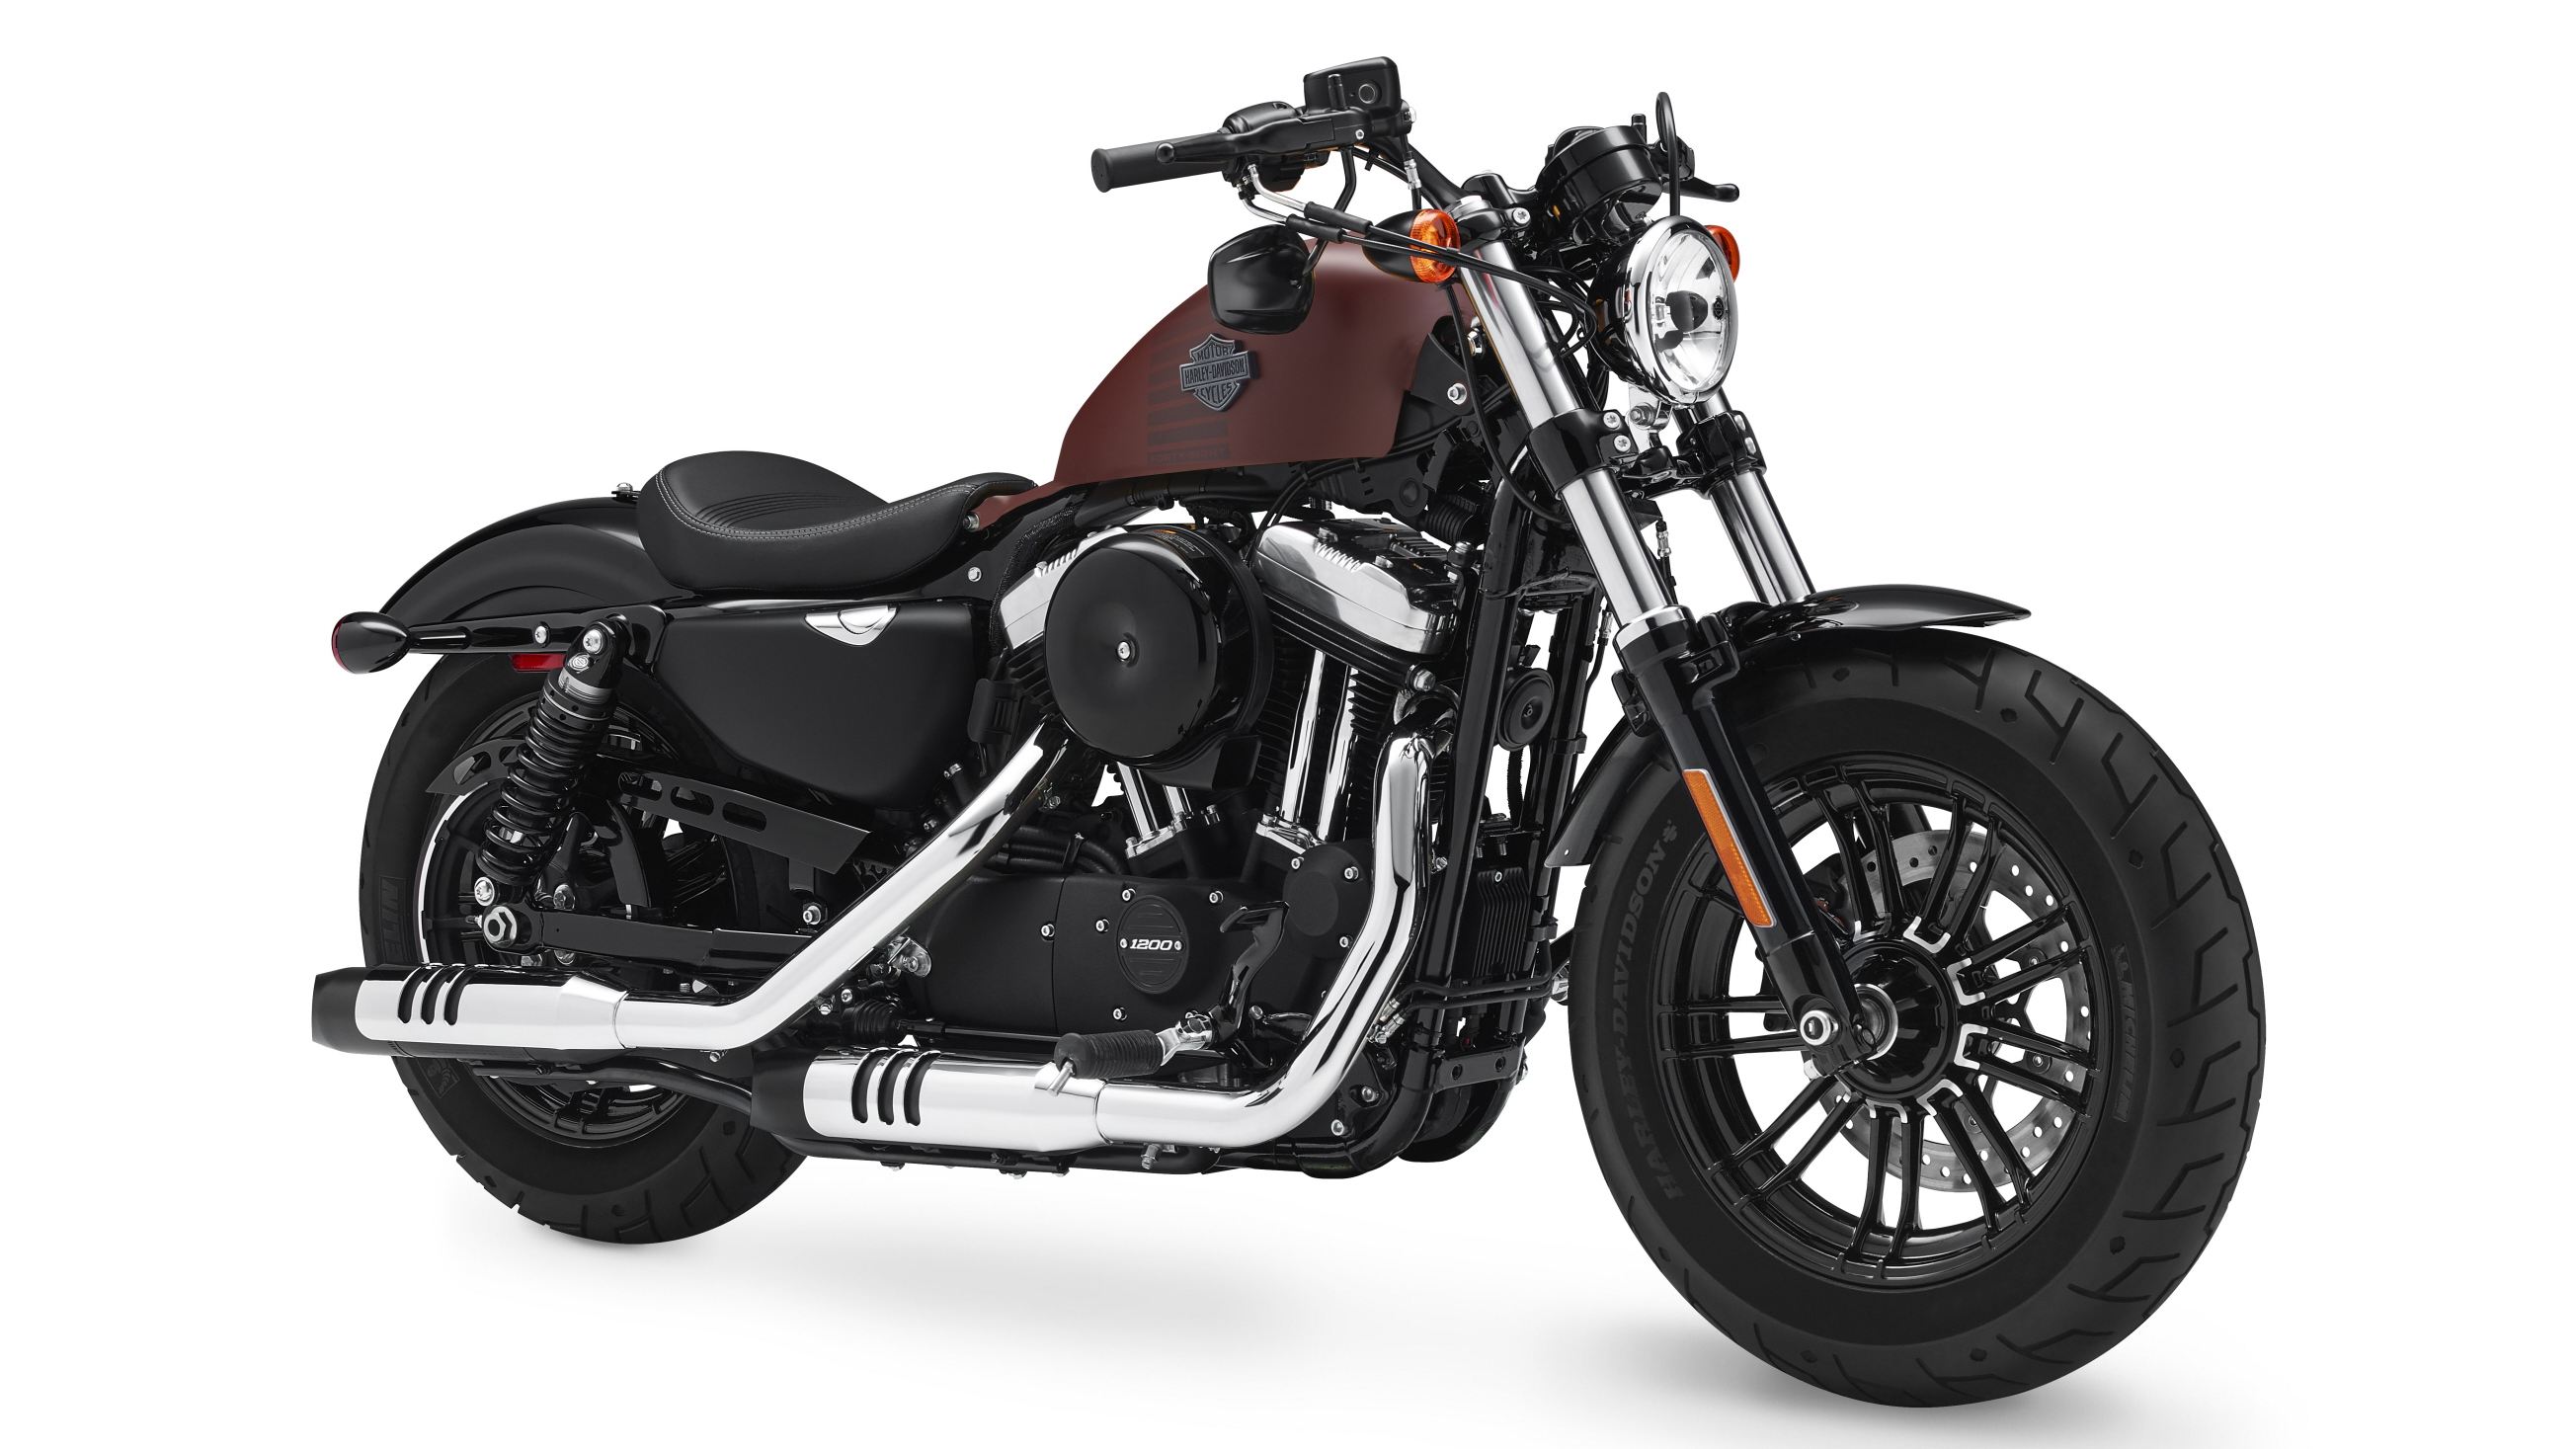 2016 - 2018 Harley-Davidson Forty-Eight | Top Speed